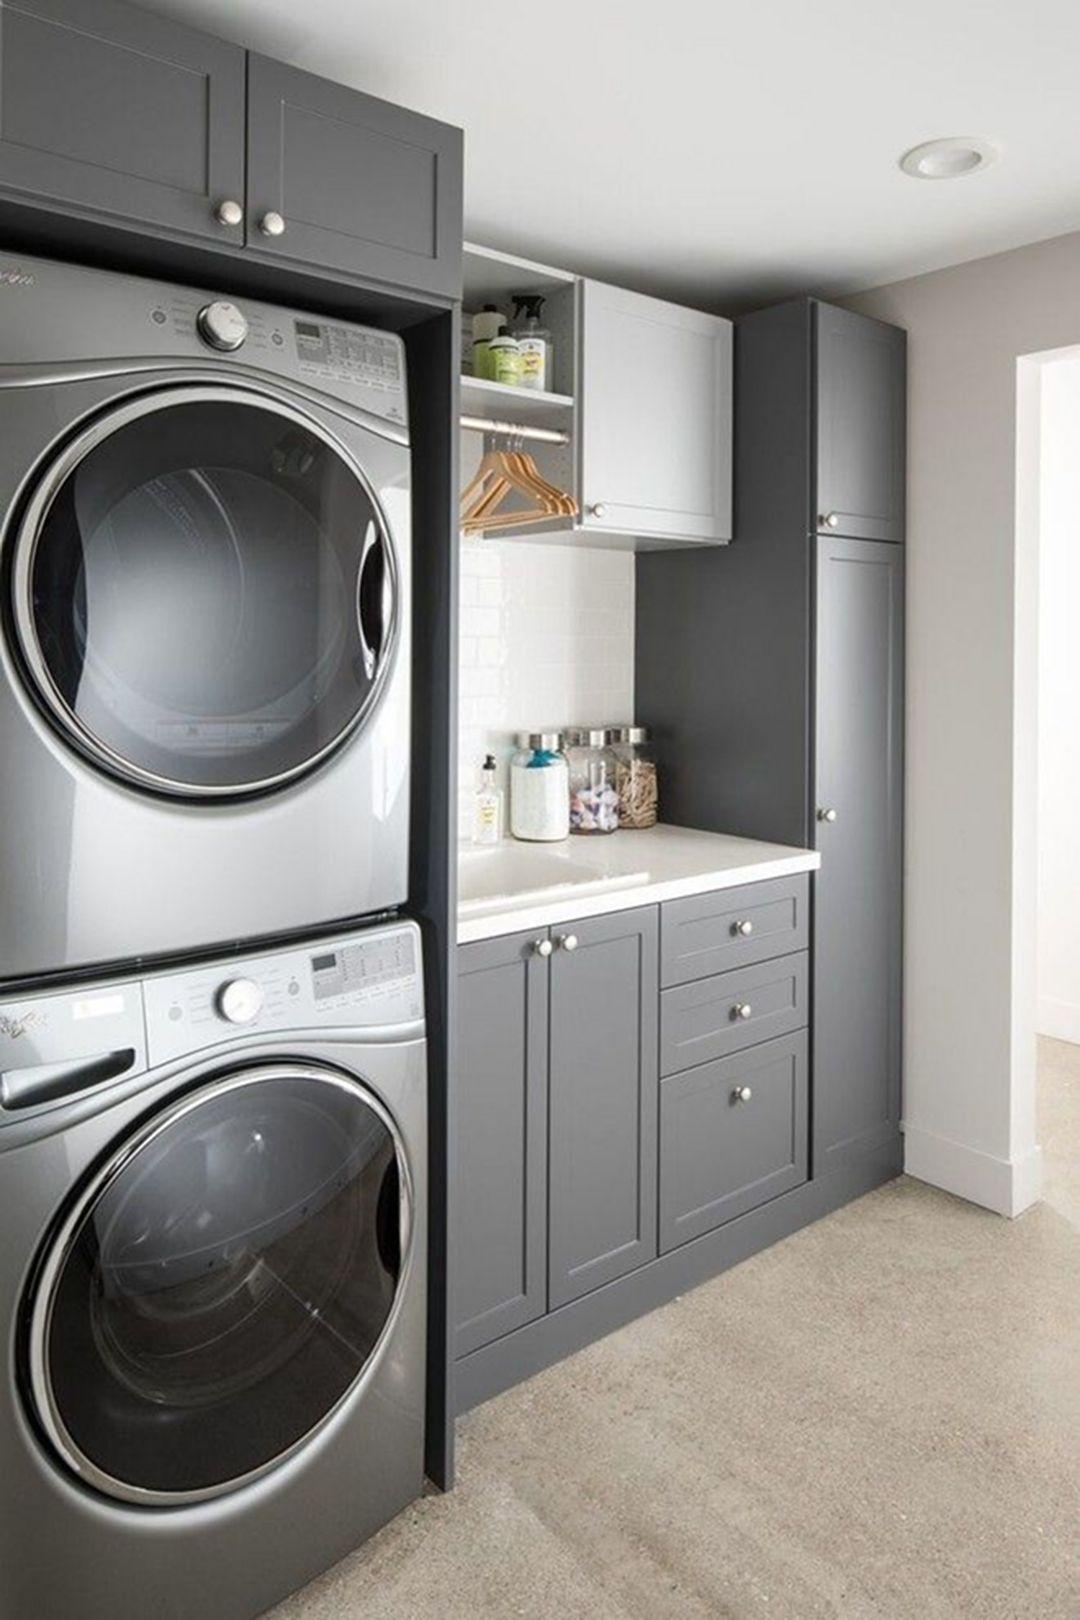 37 Awesome Tricks For Laundry Room For Small Spaces | Wohnung ...